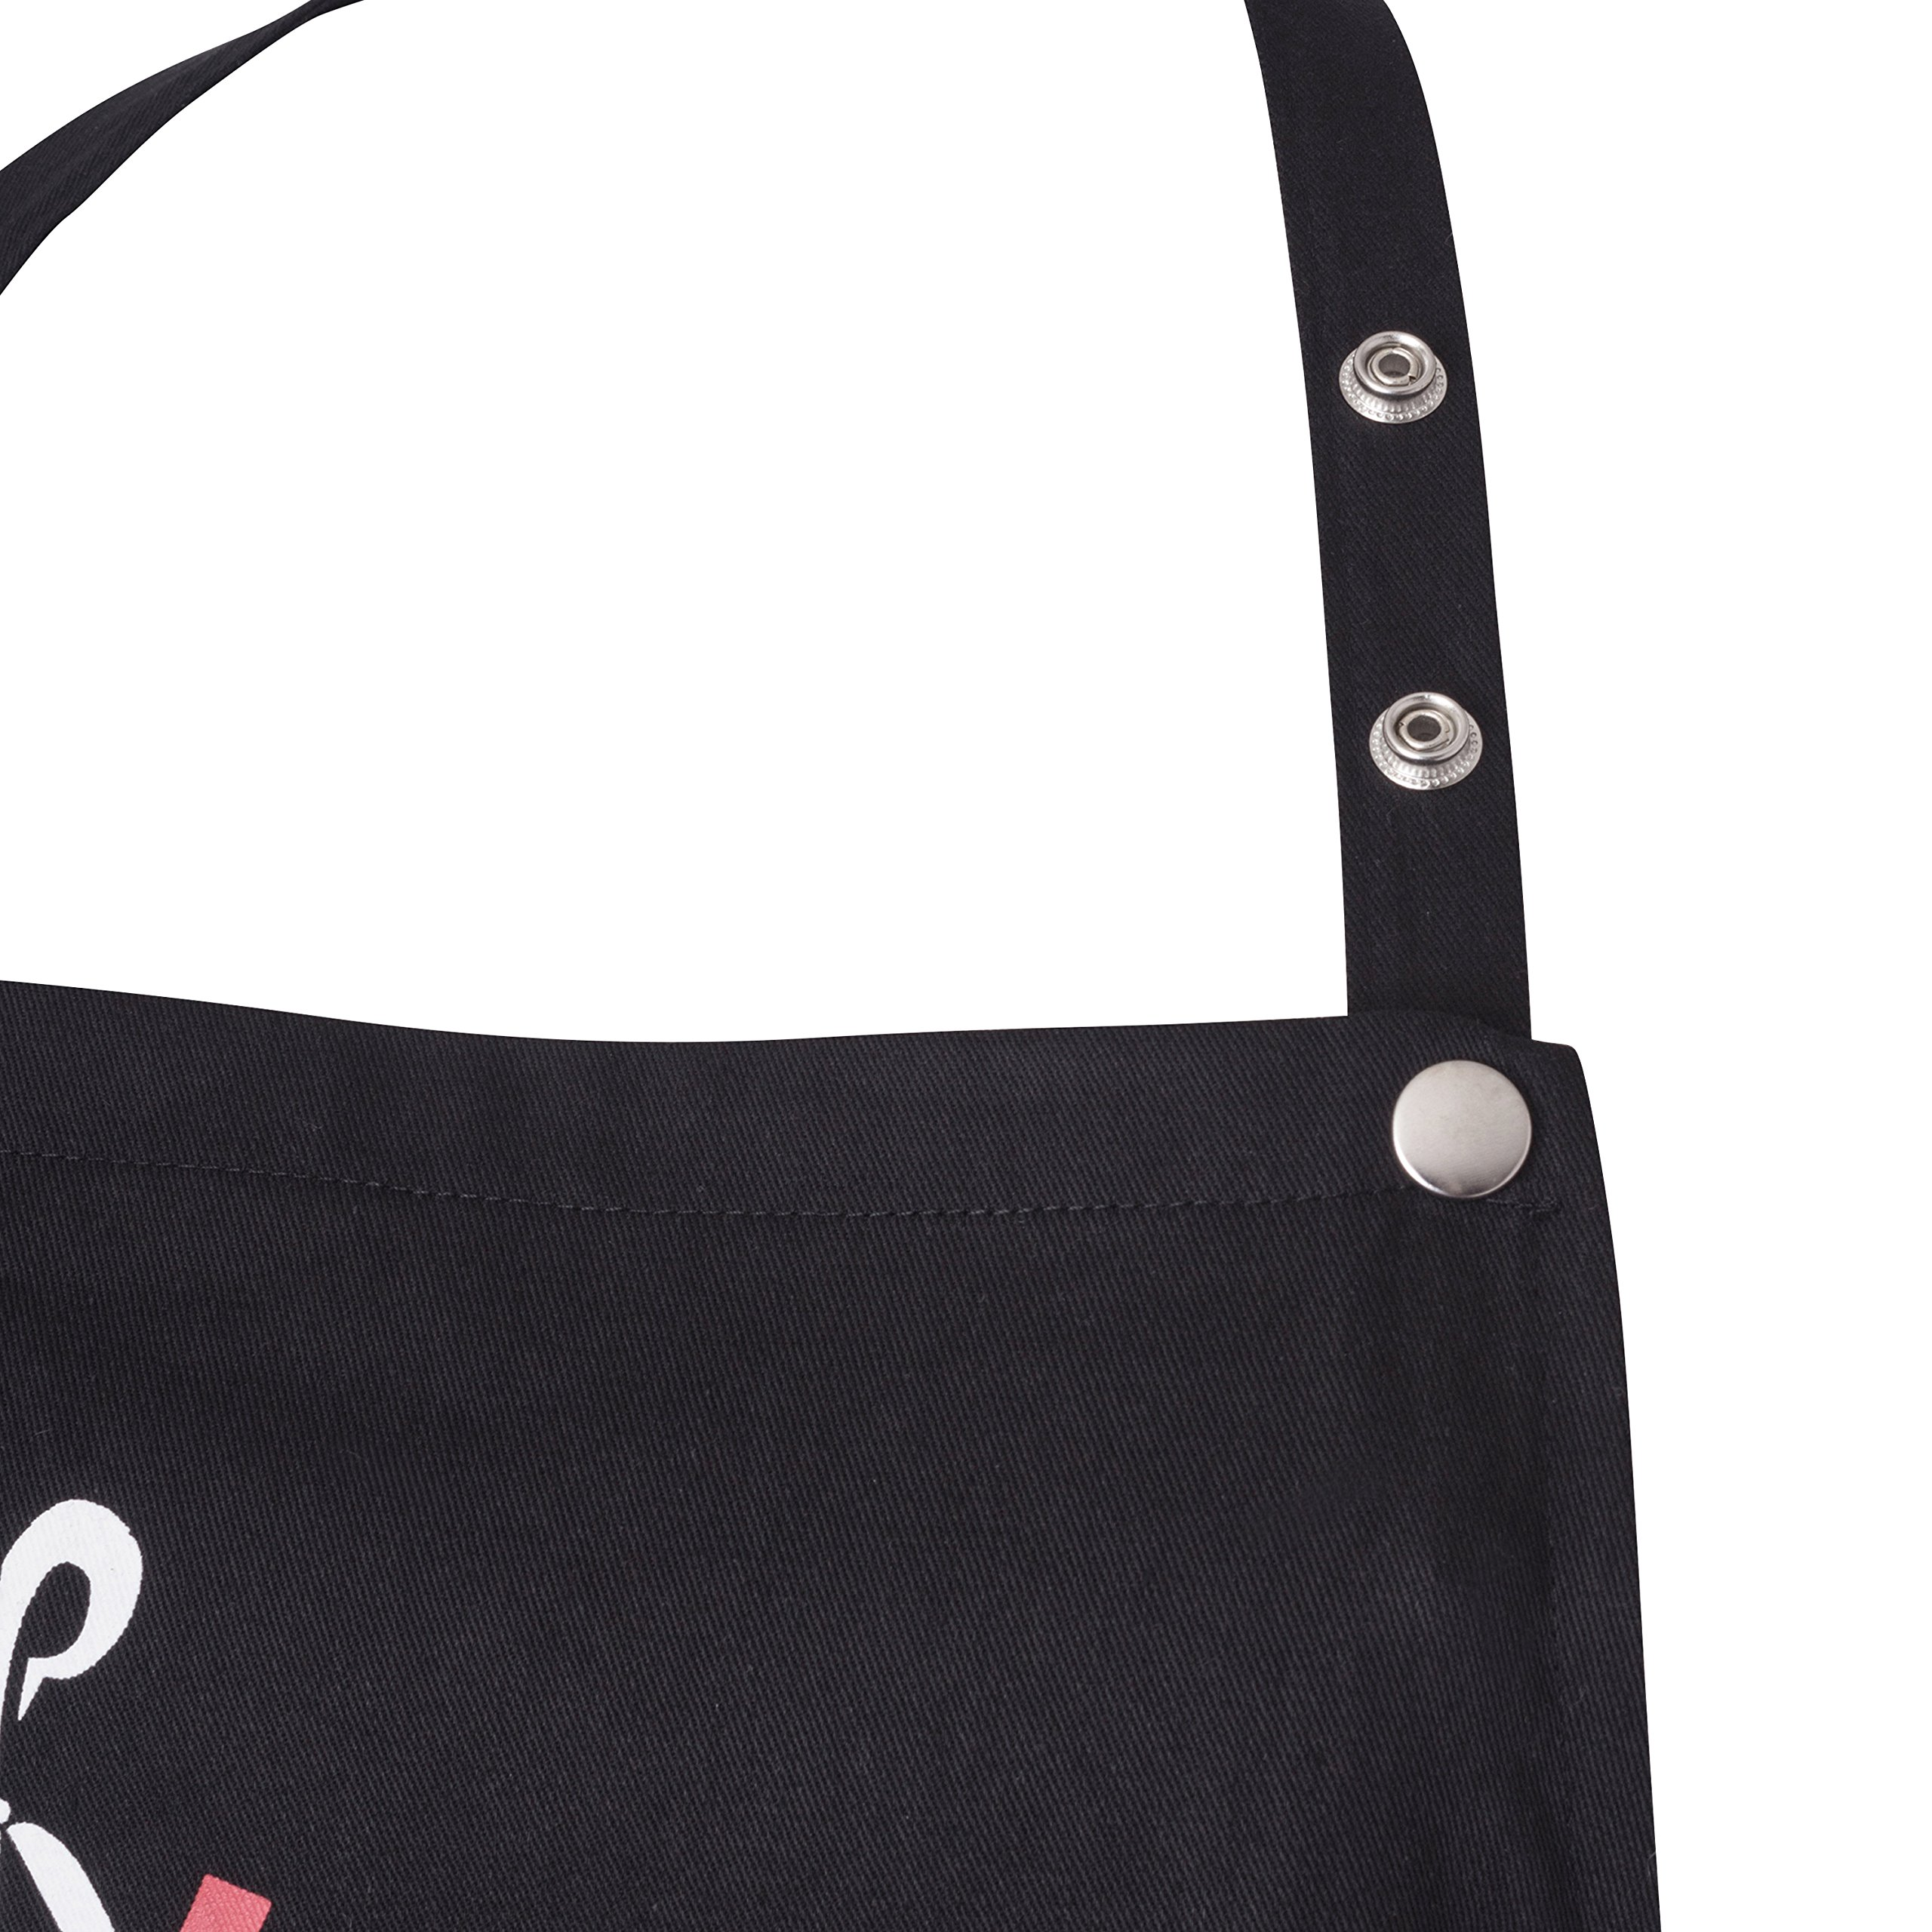 Snap Closure Bib Apron for Hairdresser, Hair Designer, Hair Care Professionals by the Professional Team of Hairday Care (Black)